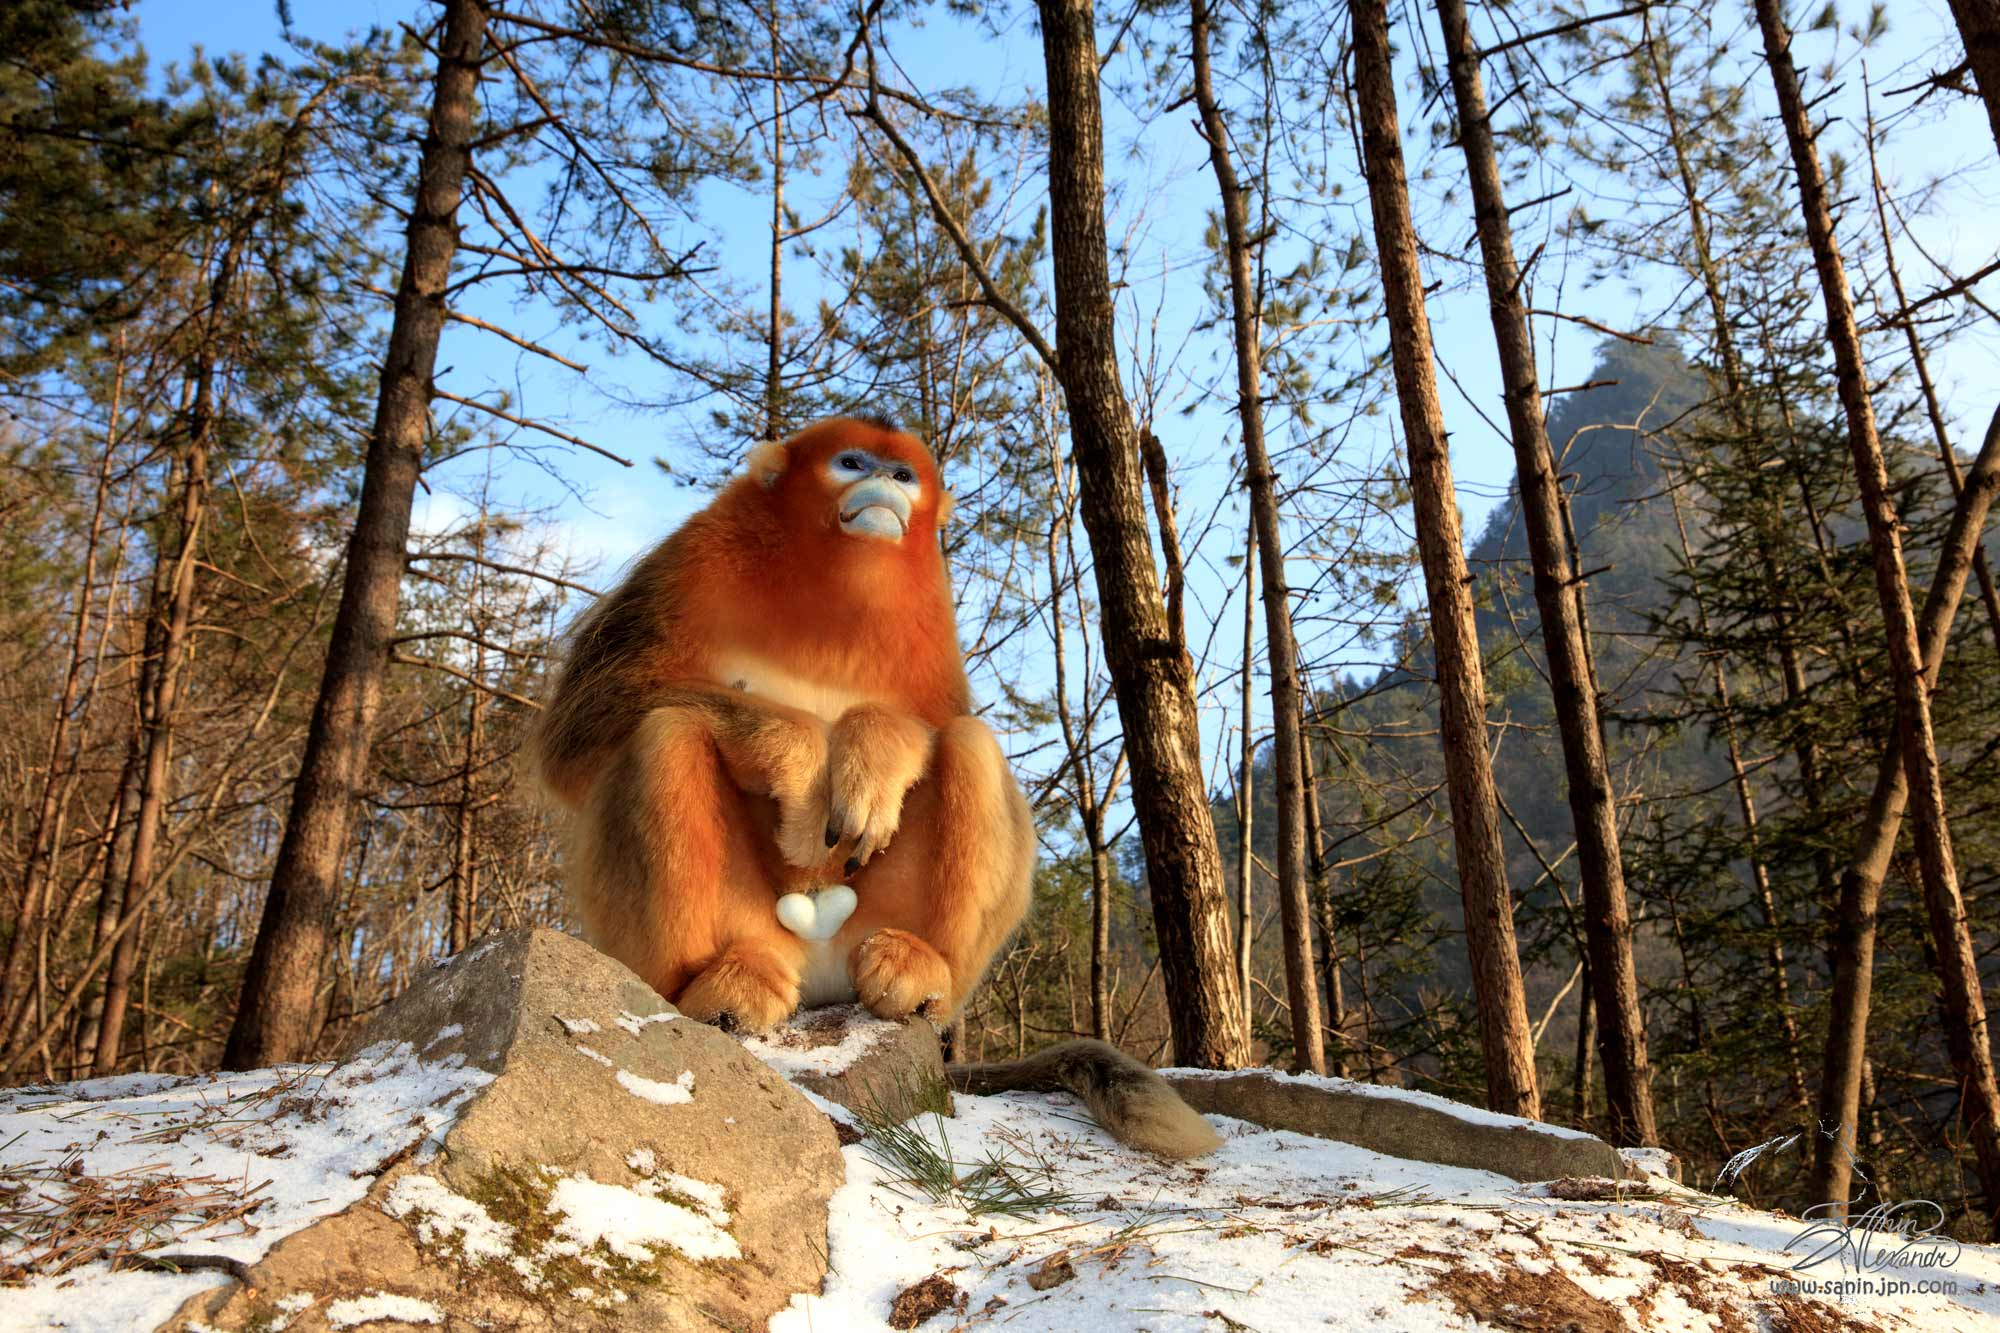 Golden snub-nosed monkey in the Qinling mountains. China